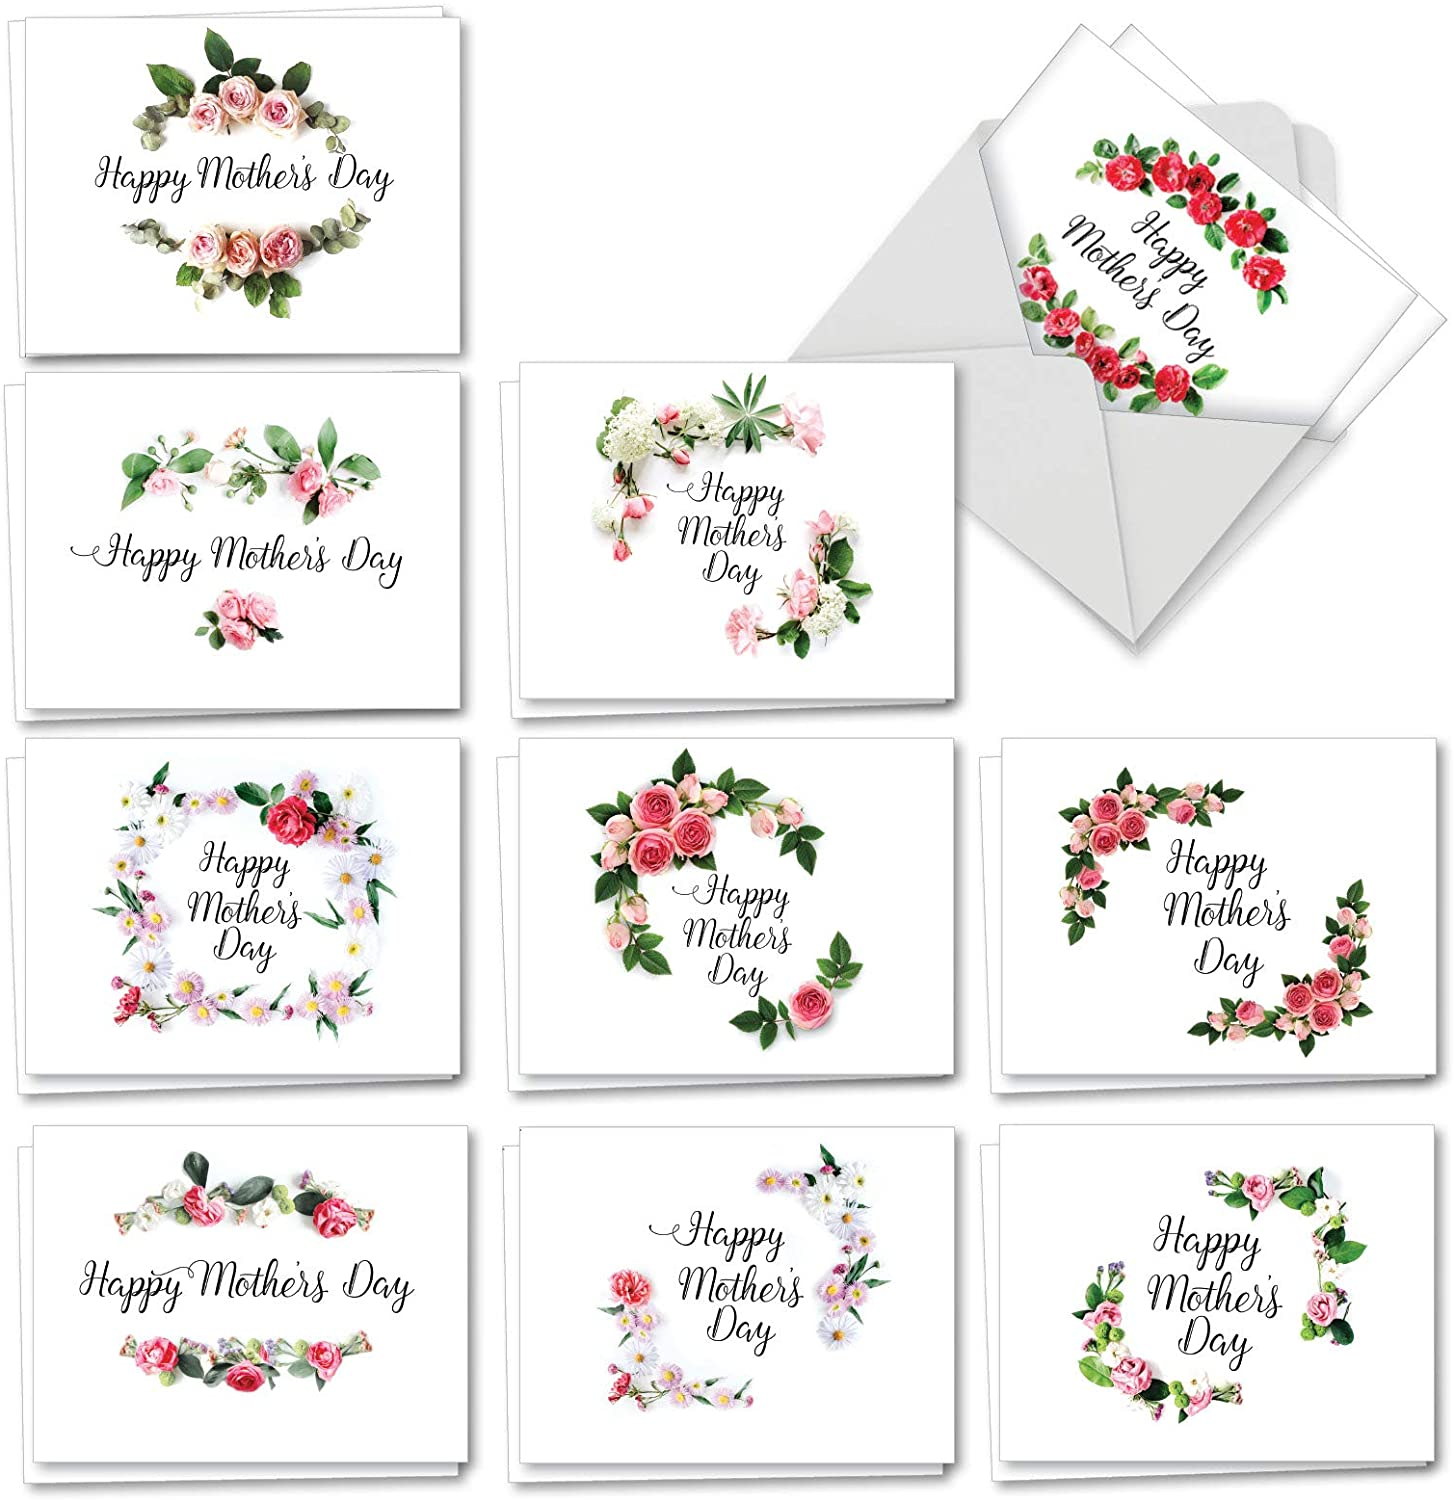 The Best Card Company - 20 Mother's Day Cards Bulk (4 x 5.12 Inch) - Loving Small Note Card Set - Elegant Flowers AM4175MDG-B2x10